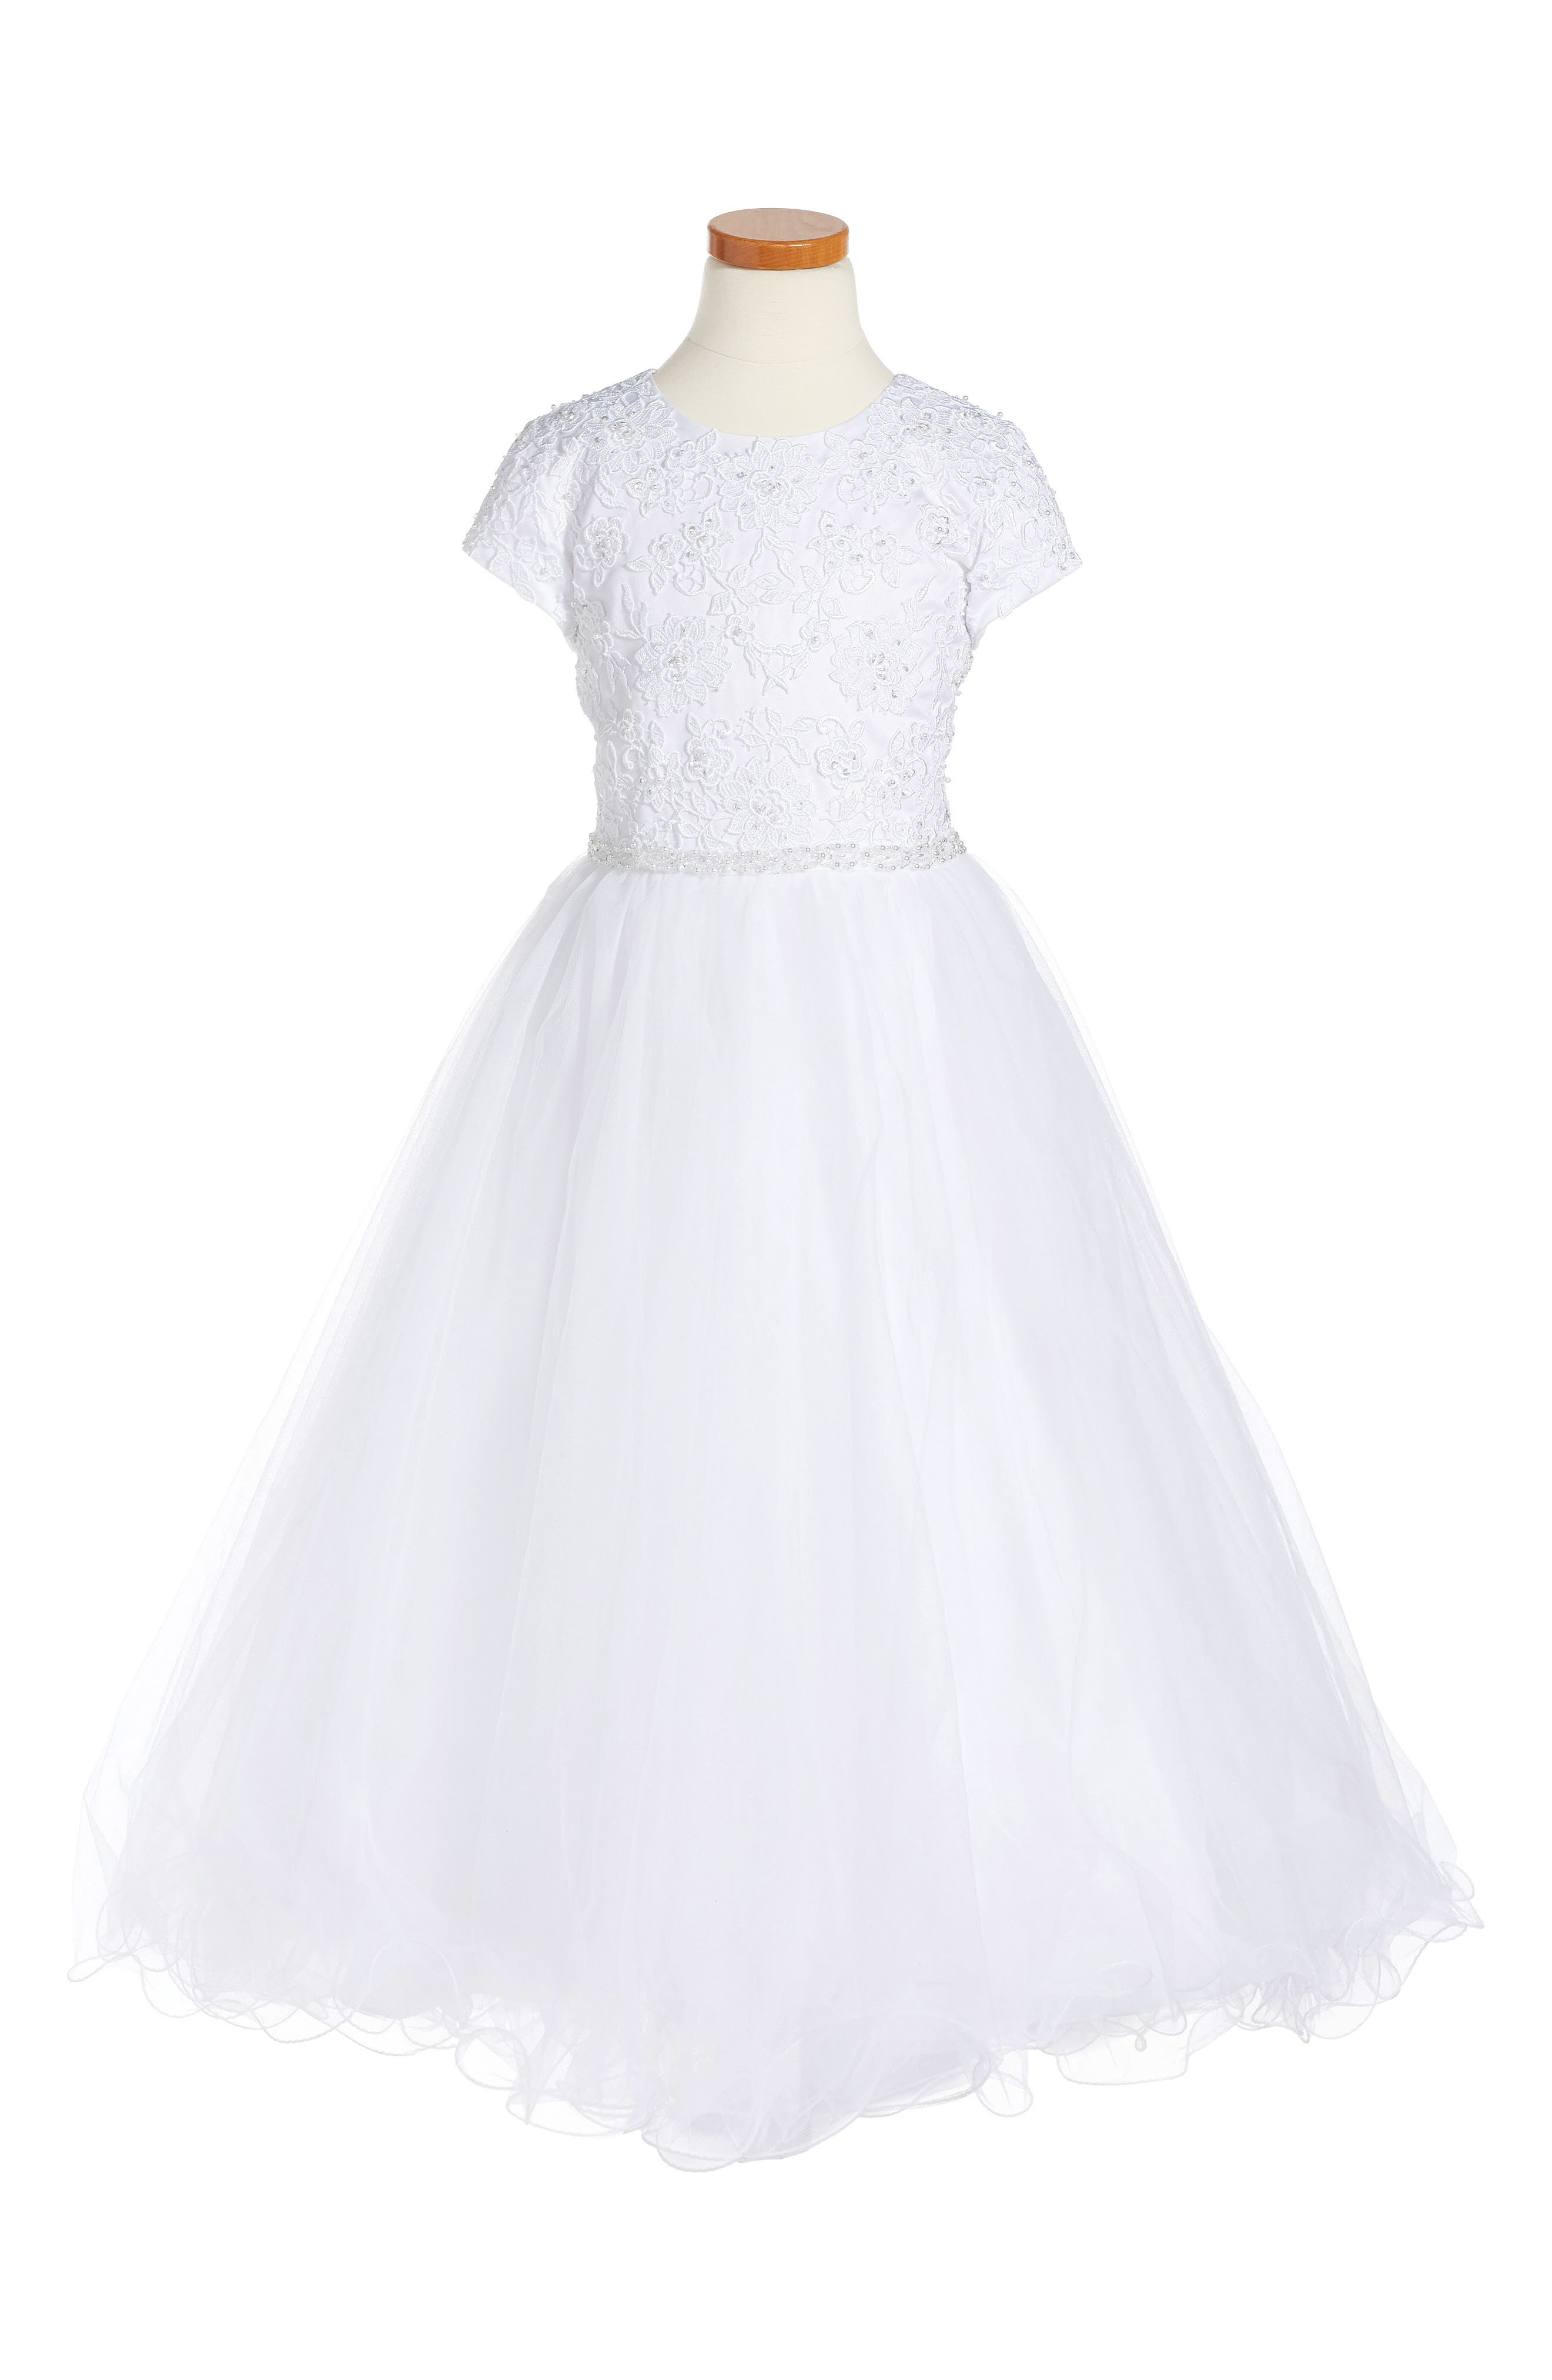 Main Image - Joan Calabrese for Mon Cheri Floral Appliqué First Communion Dress (Little Girls & Big Girls)